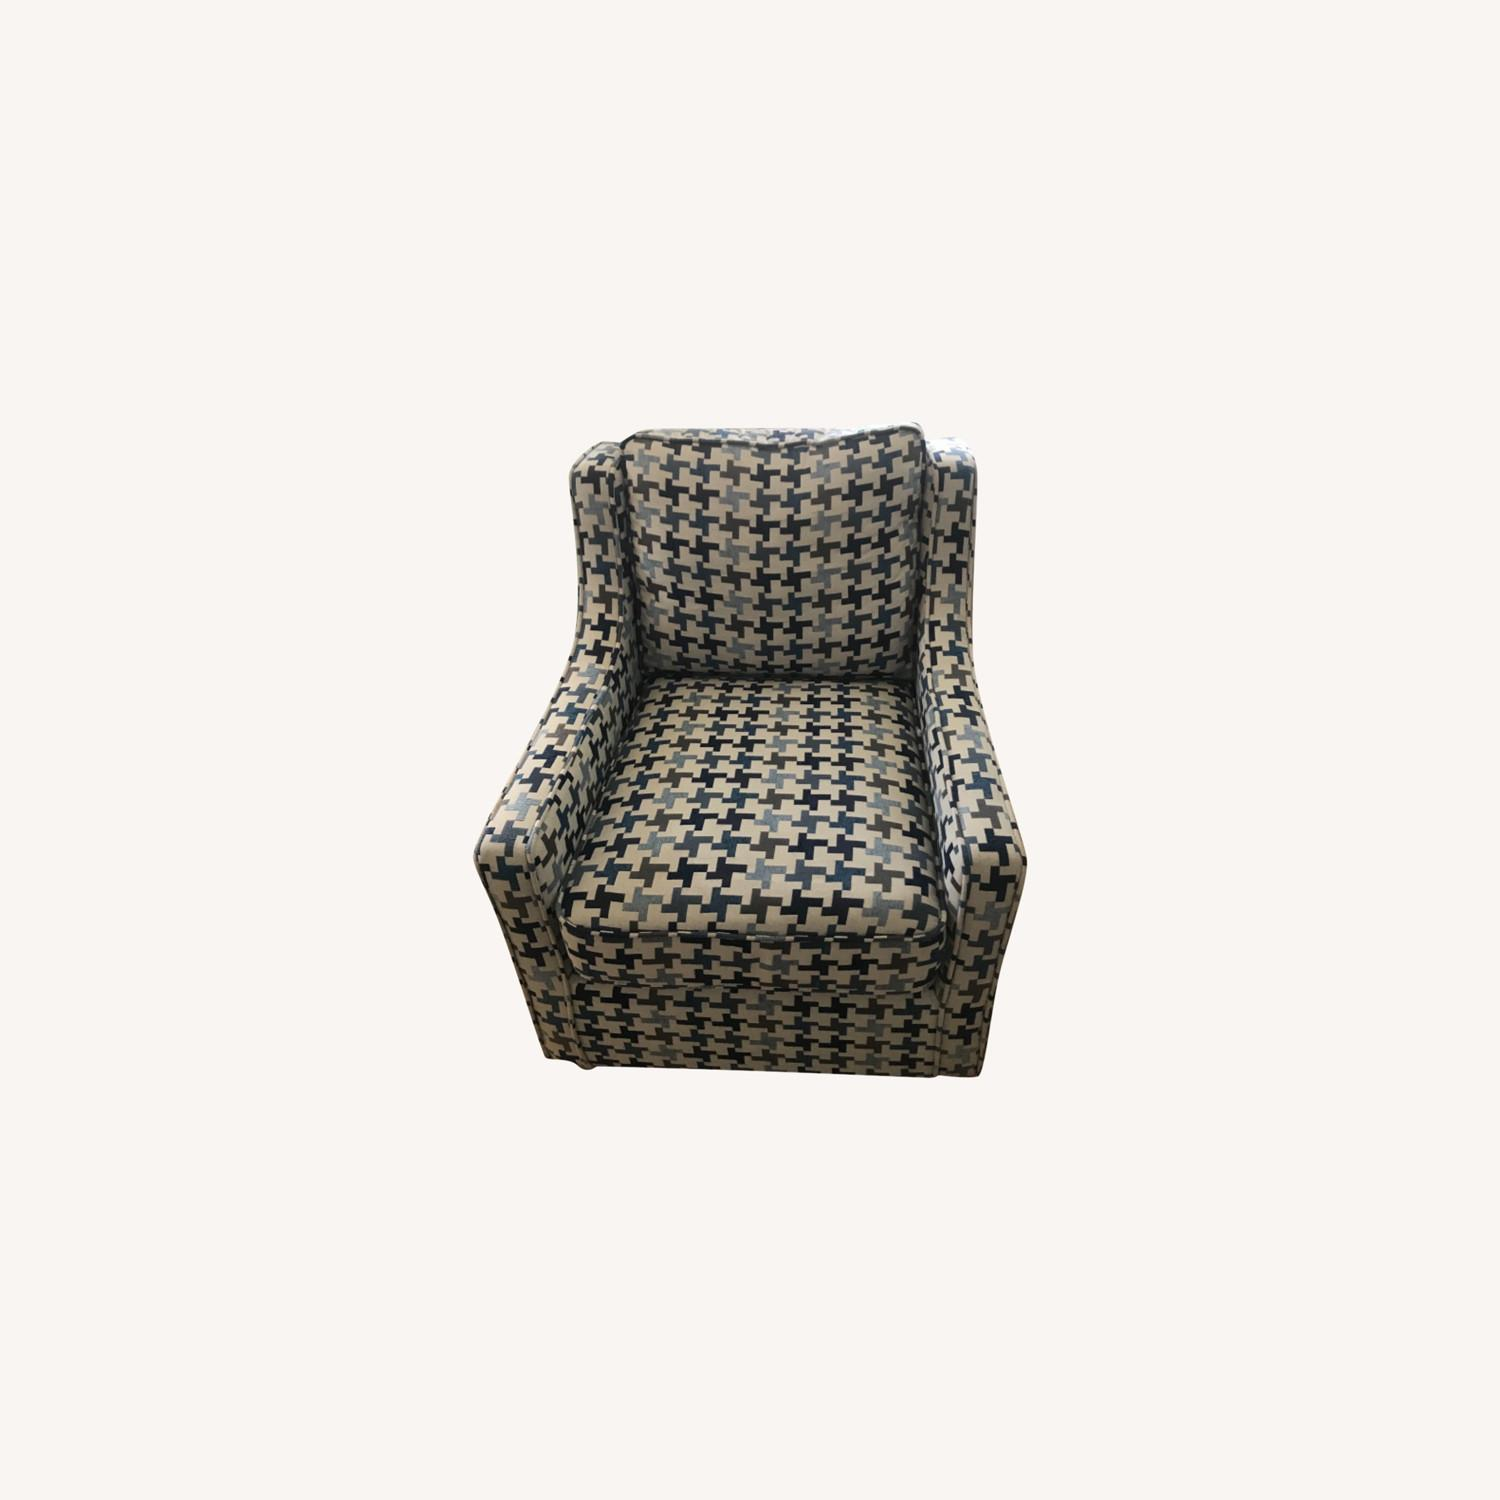 Bob's Discount Furniture Blue Patterned Armchair - image-0